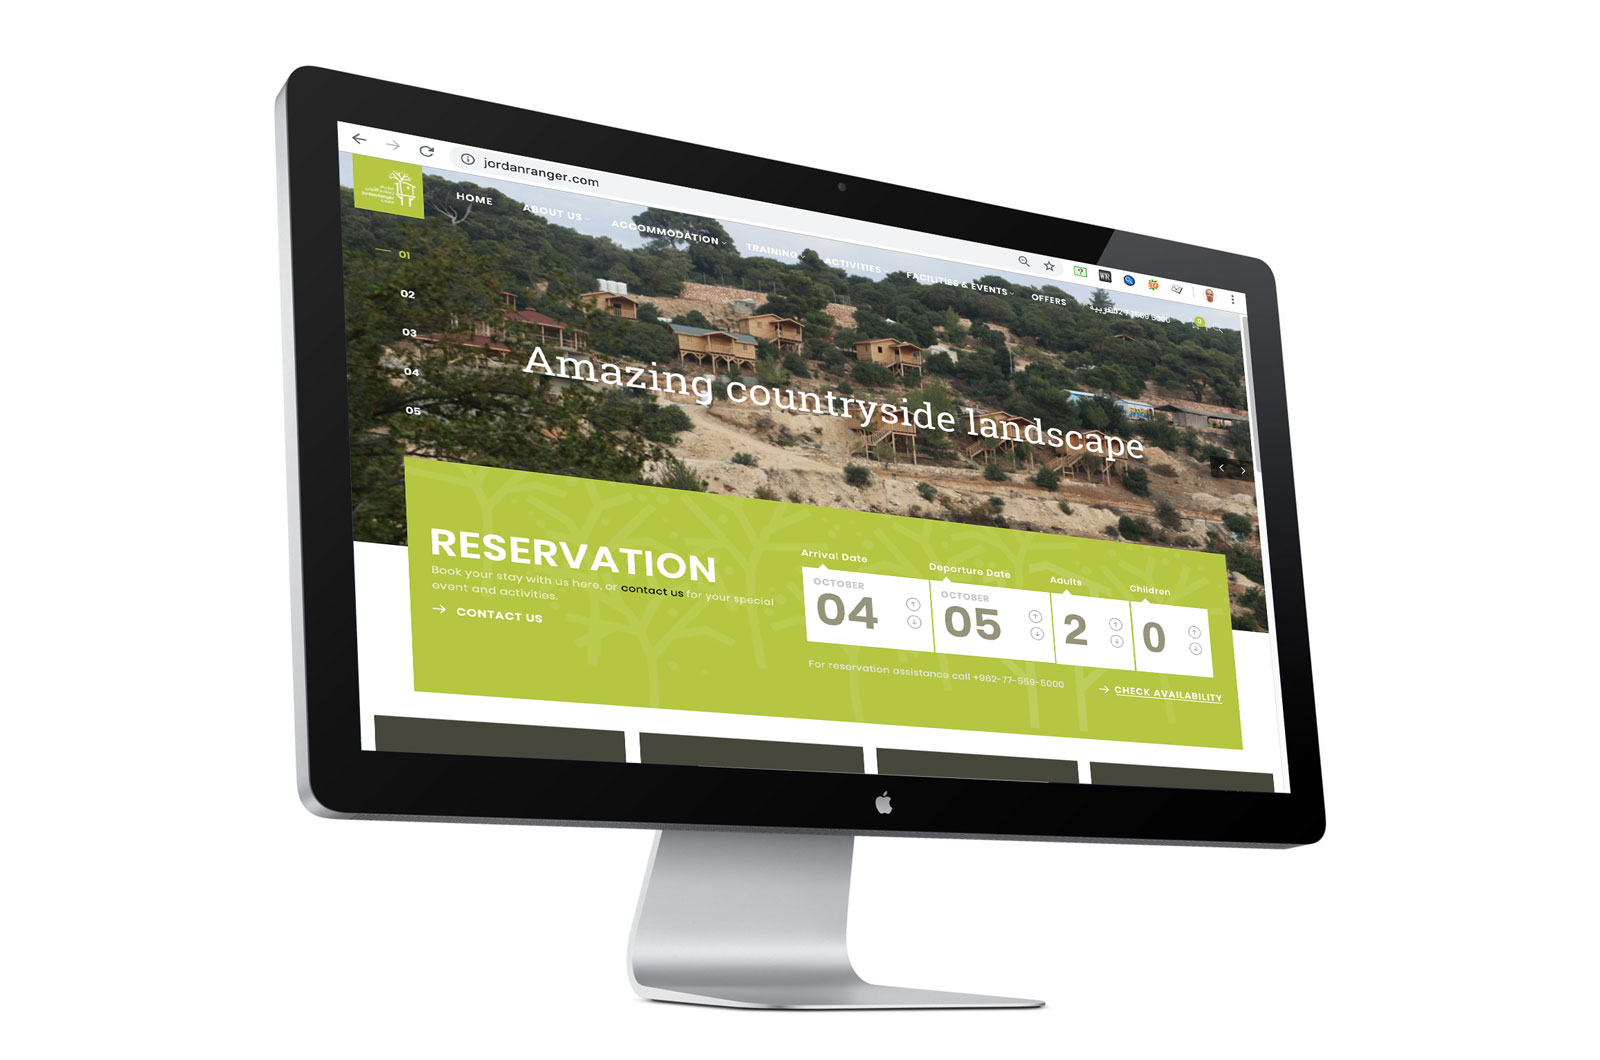 Jordan Ranger Camp website and booking engine, designed by Creations.